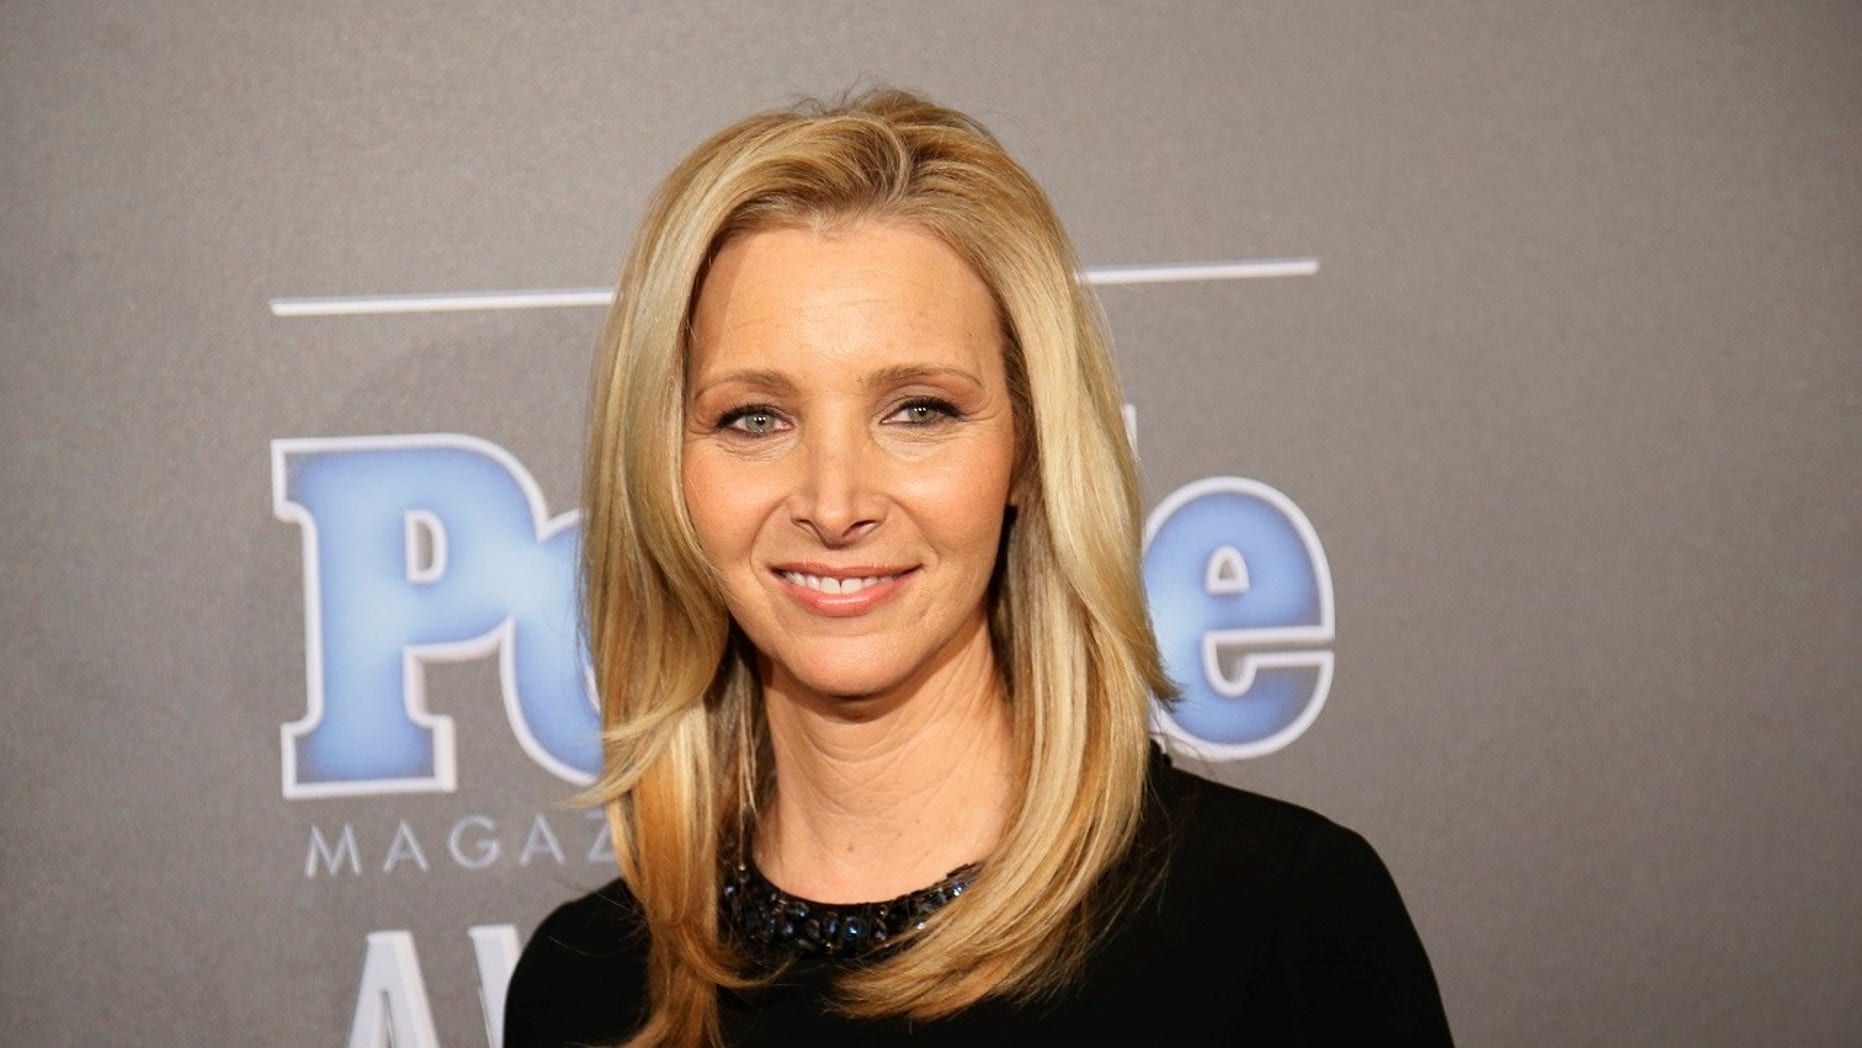 Actress Lisa Kudrow opened up about her personal fitness.